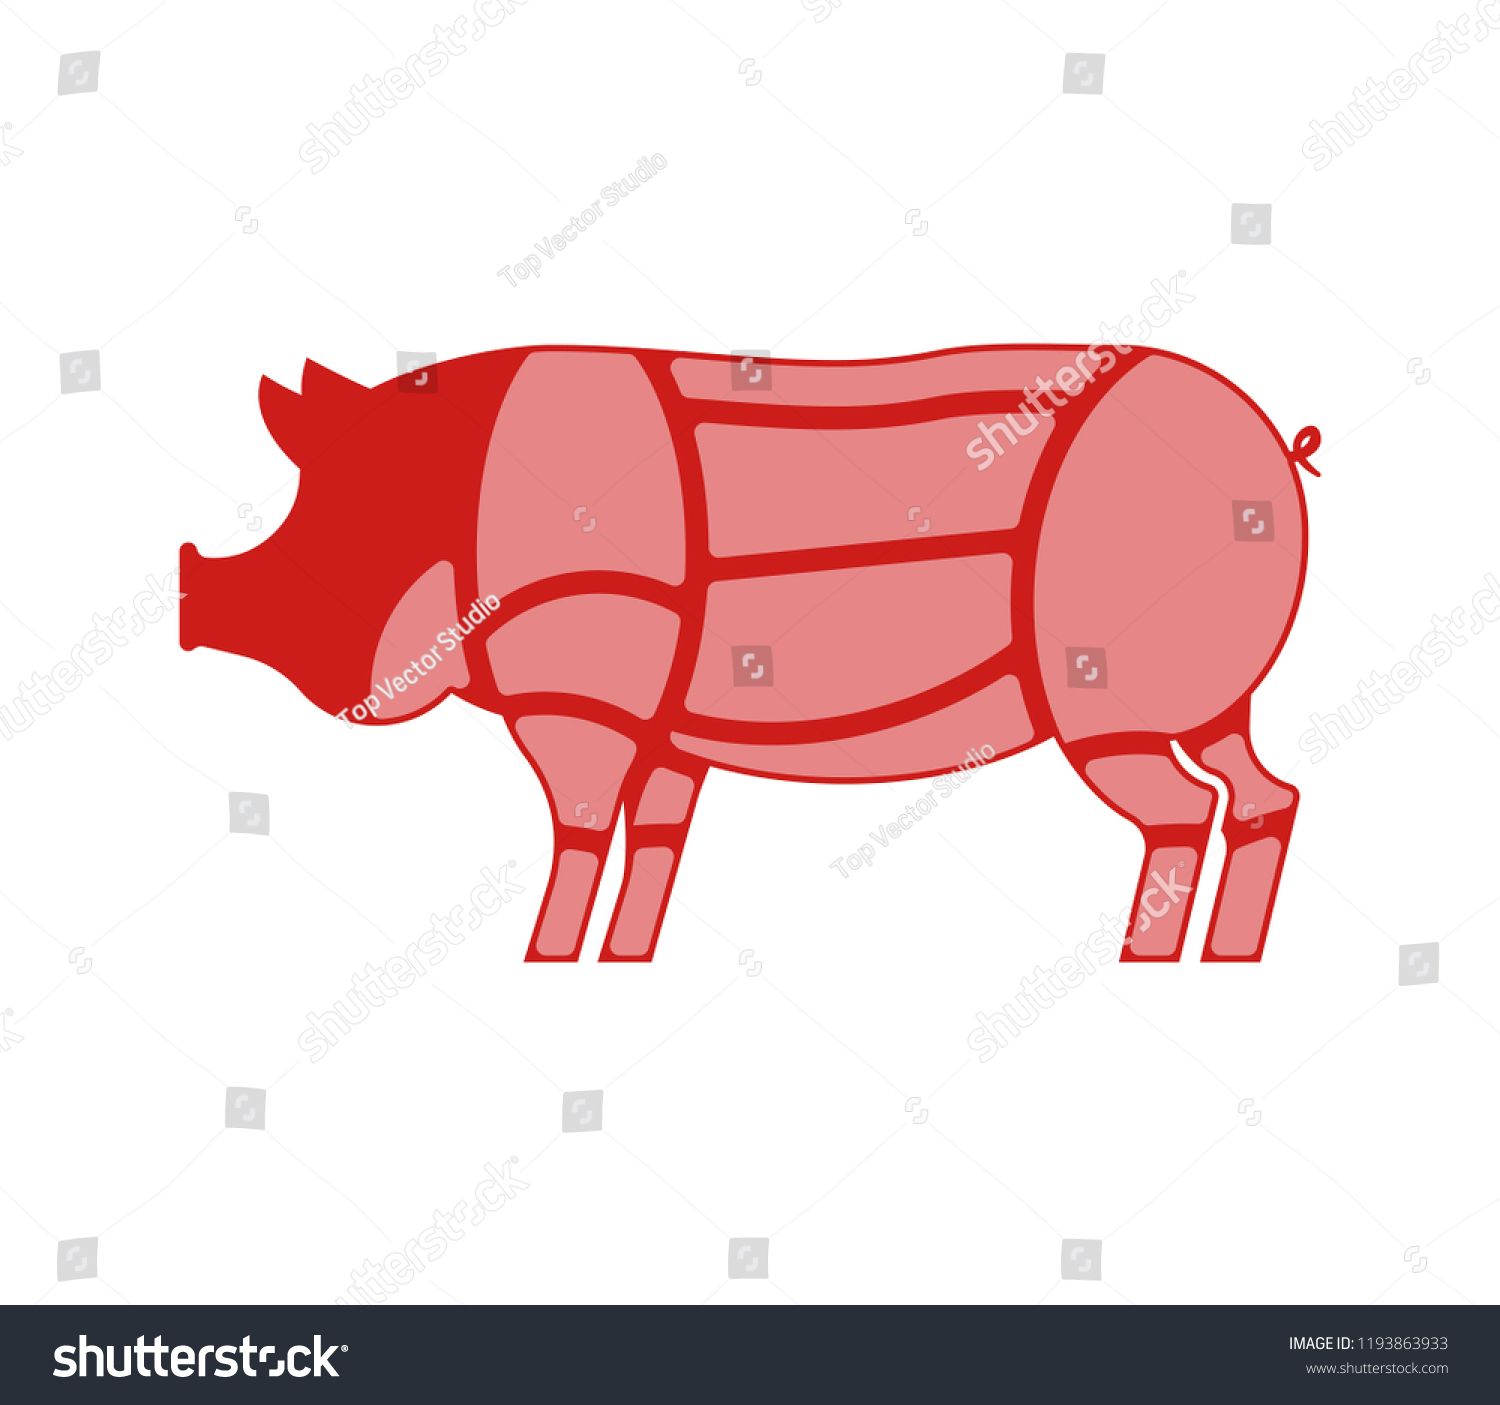 Pig Cuts Pigs Cut Meat Set Stock Vector Royalty Free 1193863933 Diagram Of Scheme Pork Animal Silhouette Farm